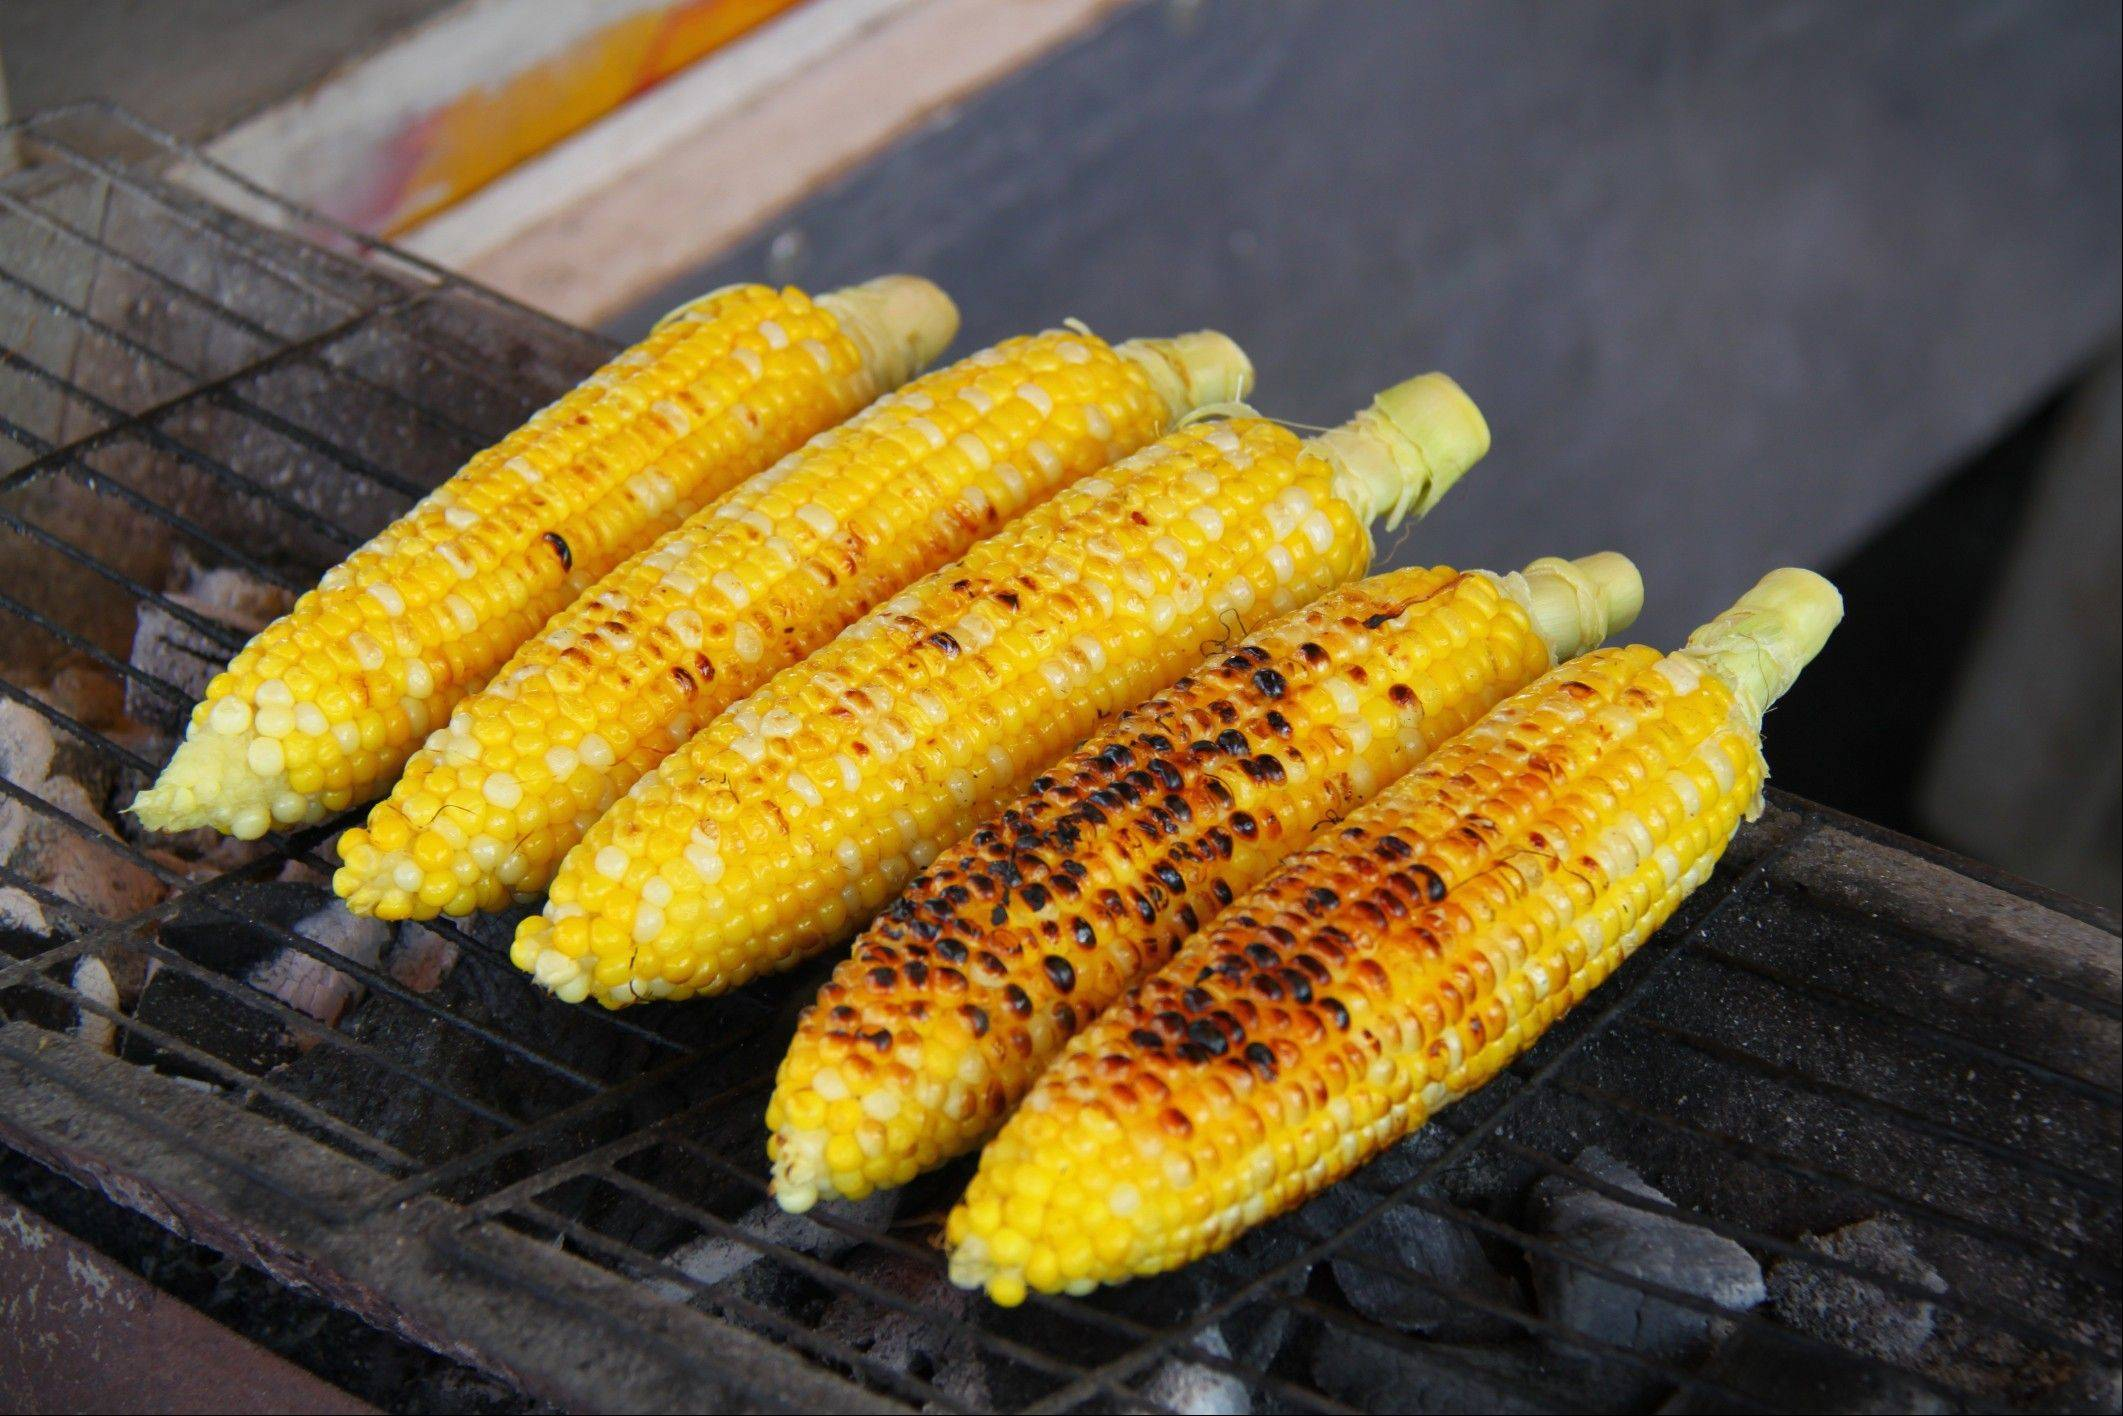 Corn on the cob takes about 10 minutes to cook over a medium-hot charcoal grill.